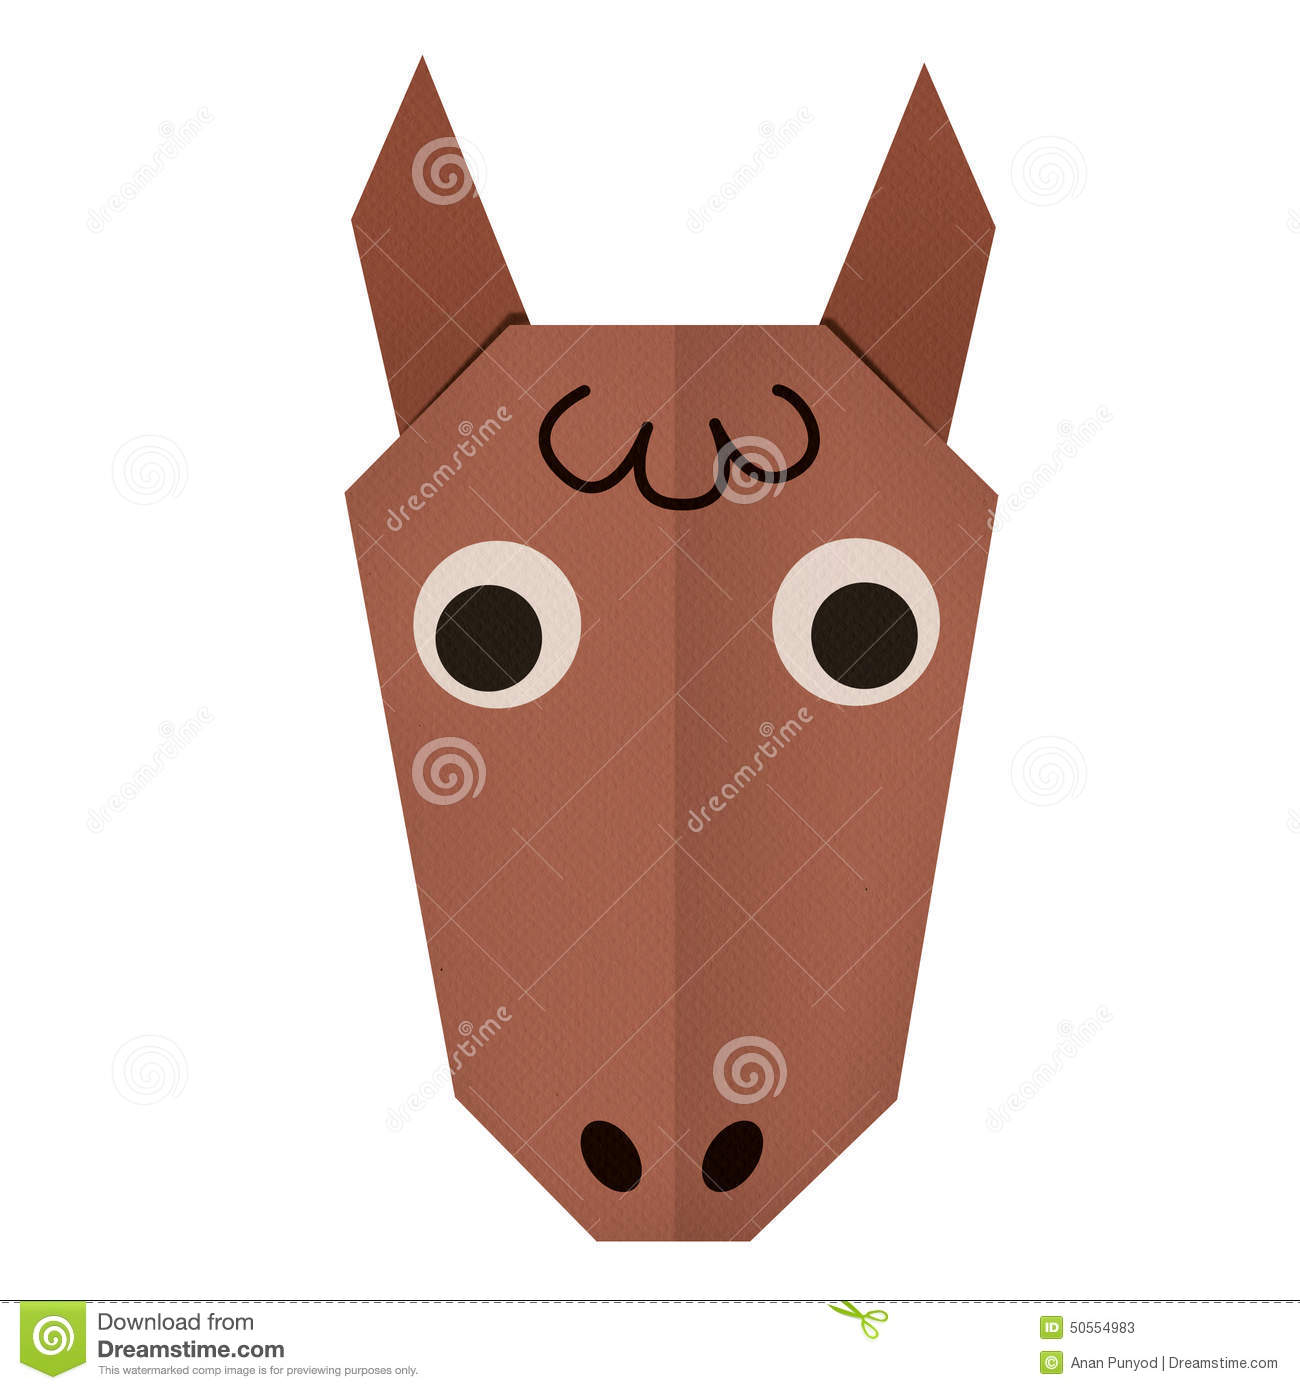 How To Make A Horse Origami